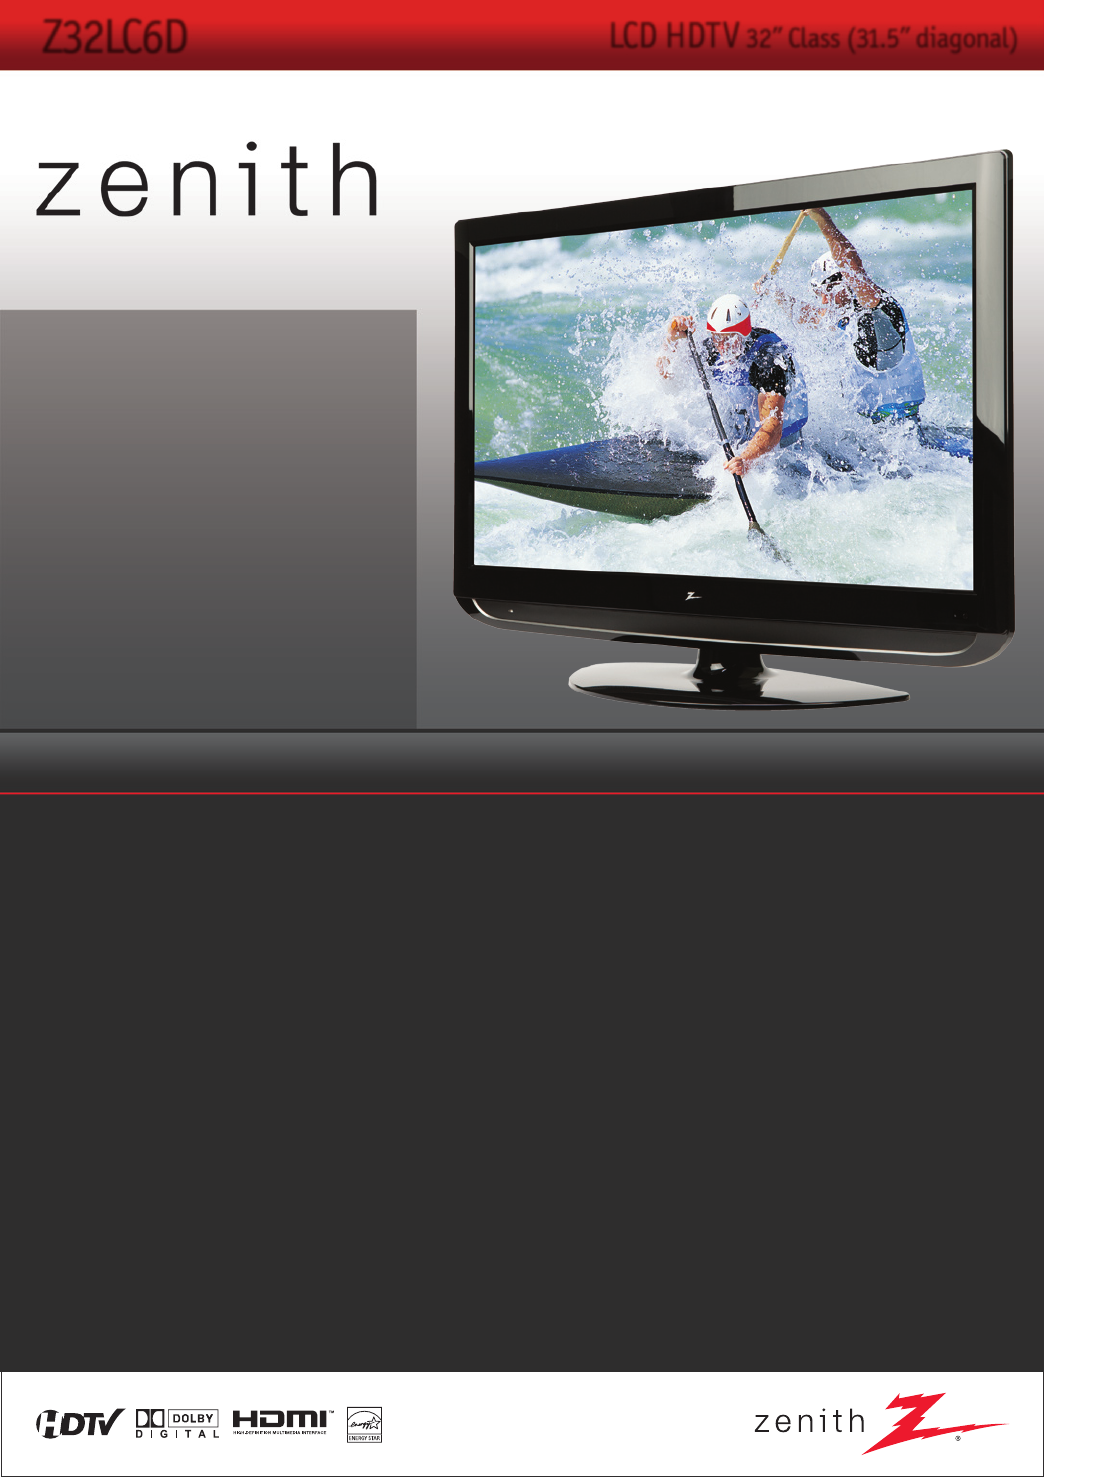 zenith flat panel television z32lc6d user guide manualsonline com rh tv manualsonline com Zenith 27-Inch Flat Screen TV Zenith 42 Inch Flat Screen TV